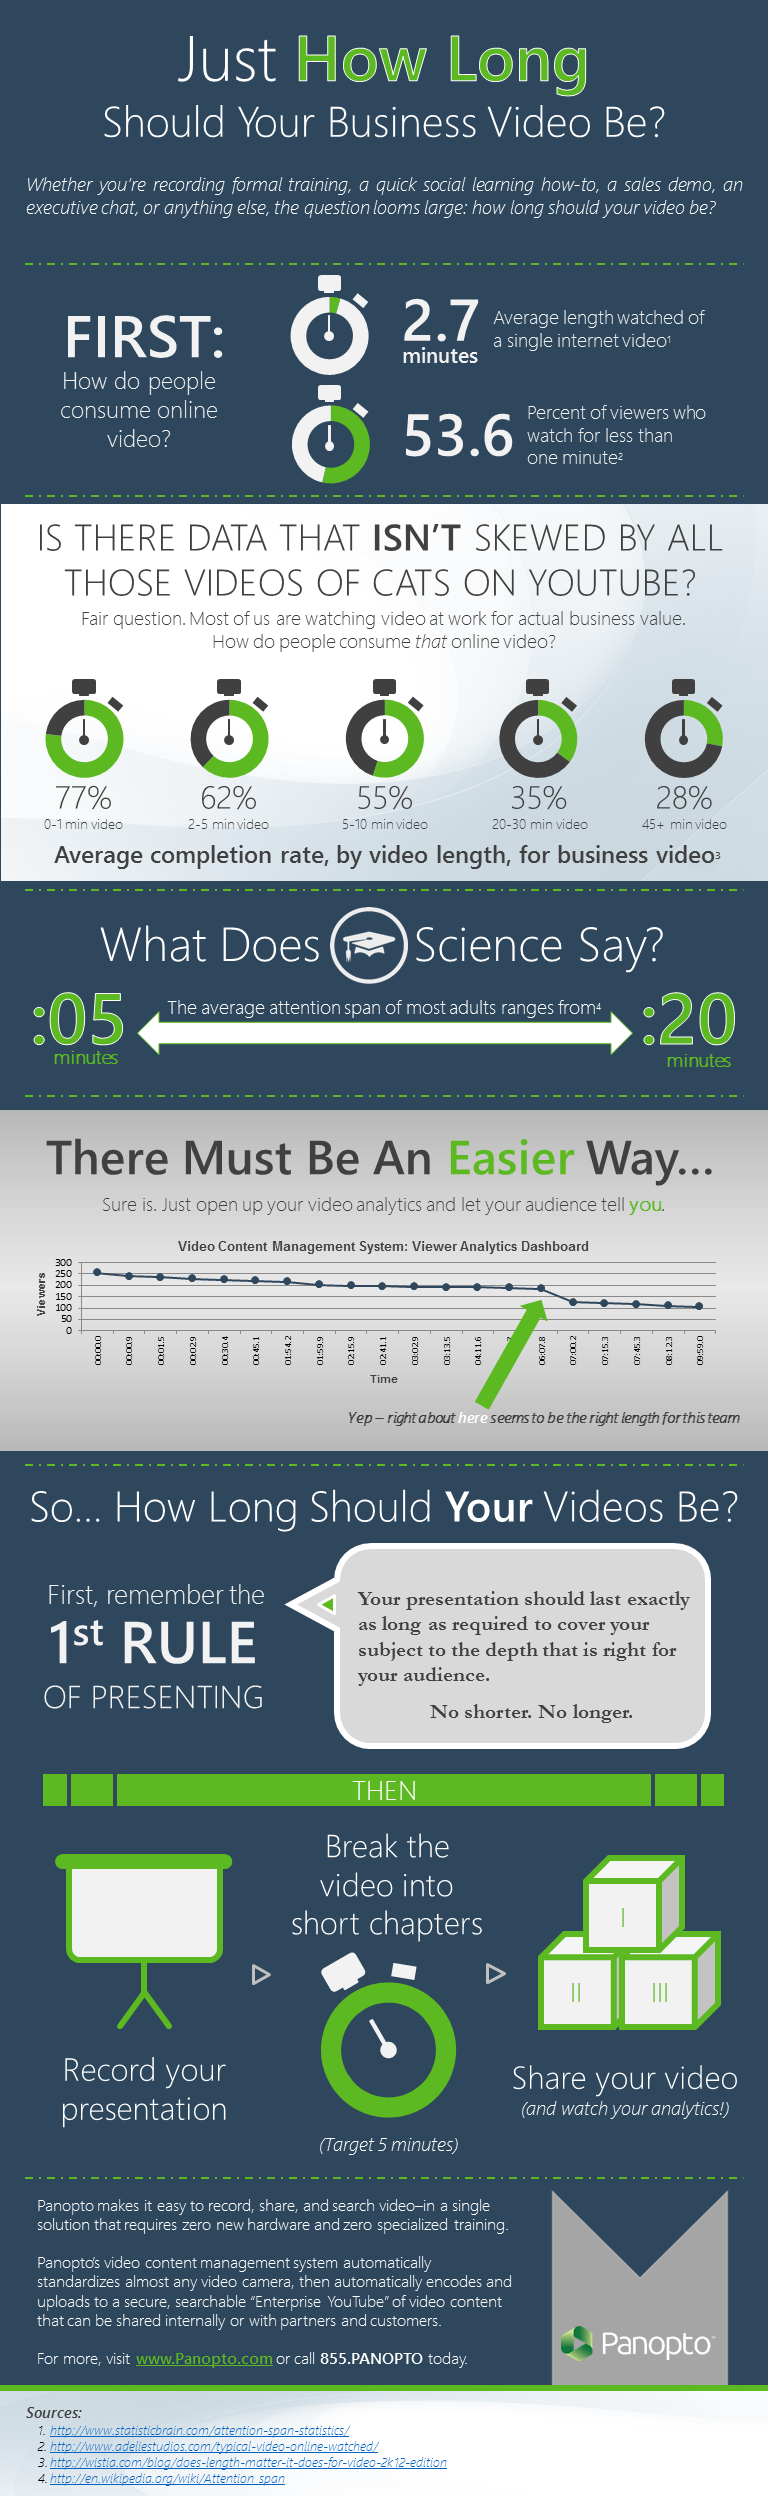 2016-Panopto-Enterprise-Video-Infographic-How-Long-Should-A-Video-Be